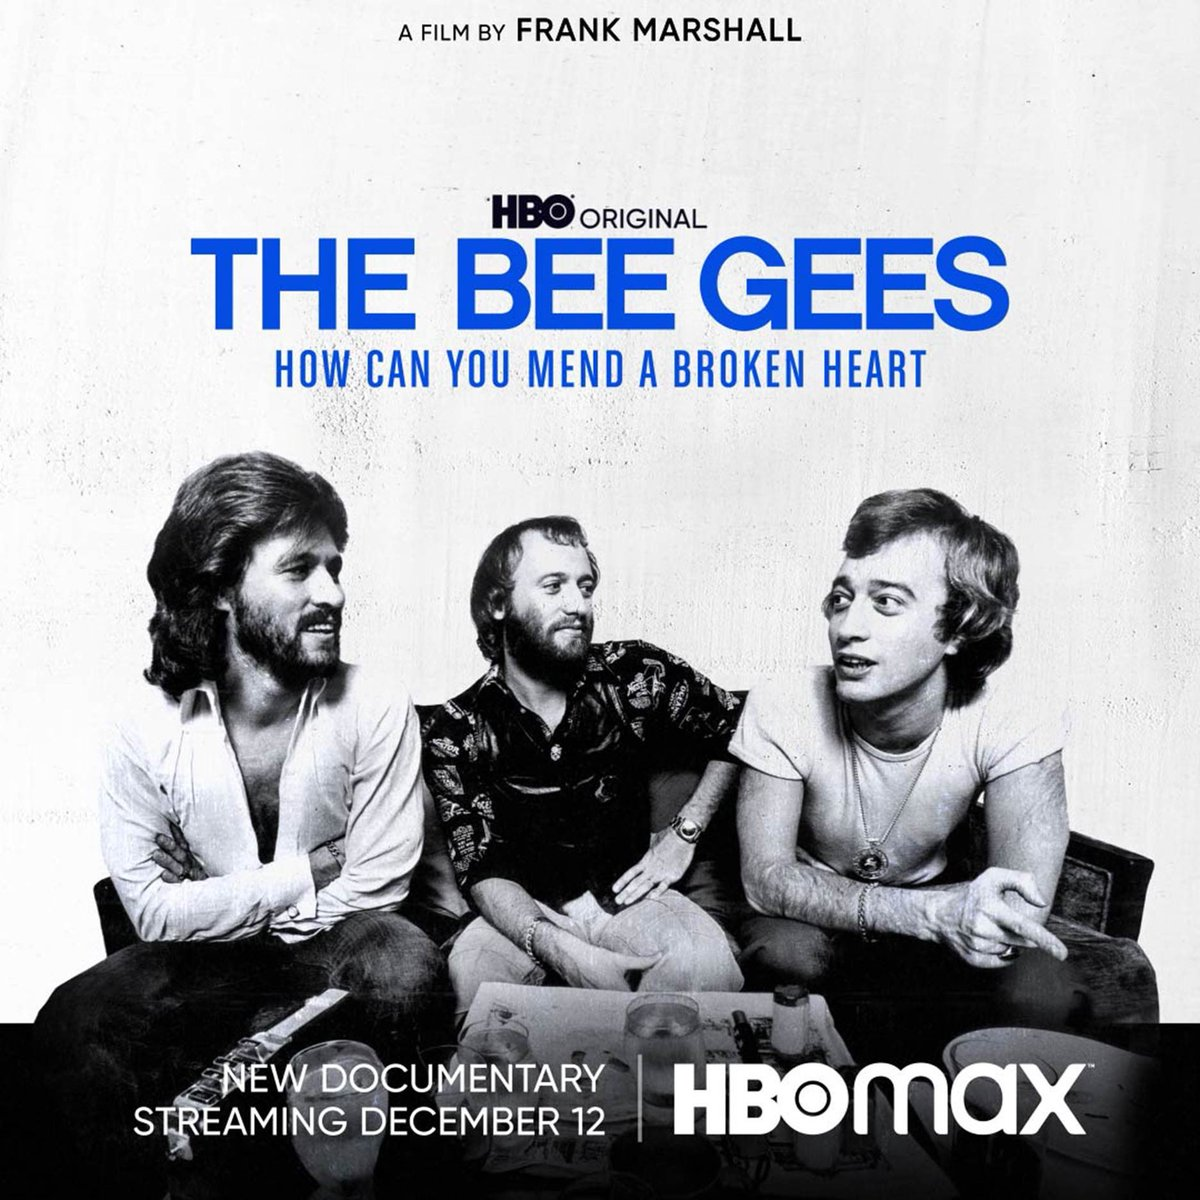 Wow #BeeGeesFilm. Always loved them but what a tale of brothers, pop history, pure hard work & evolving artistry. 🙌🏻Thanks @LeDoctor. So moving. Because that's how they wrote-unabashedly from the ❤️@HBODocs